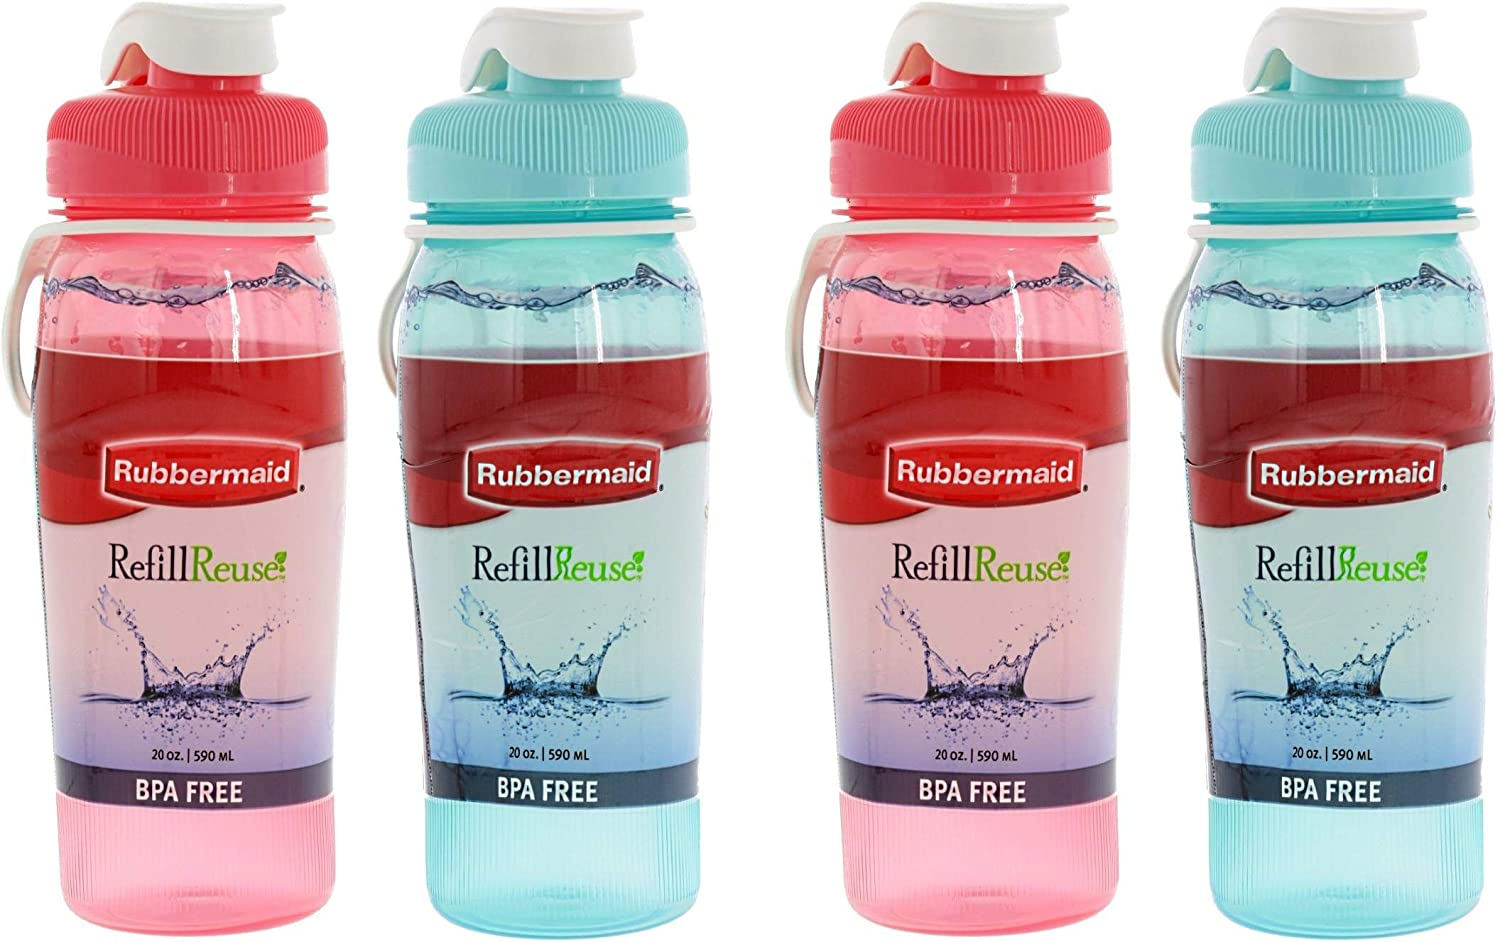 Rubbermaid Refill Reuse Bottle, 20 Ounce, Assorted Colors